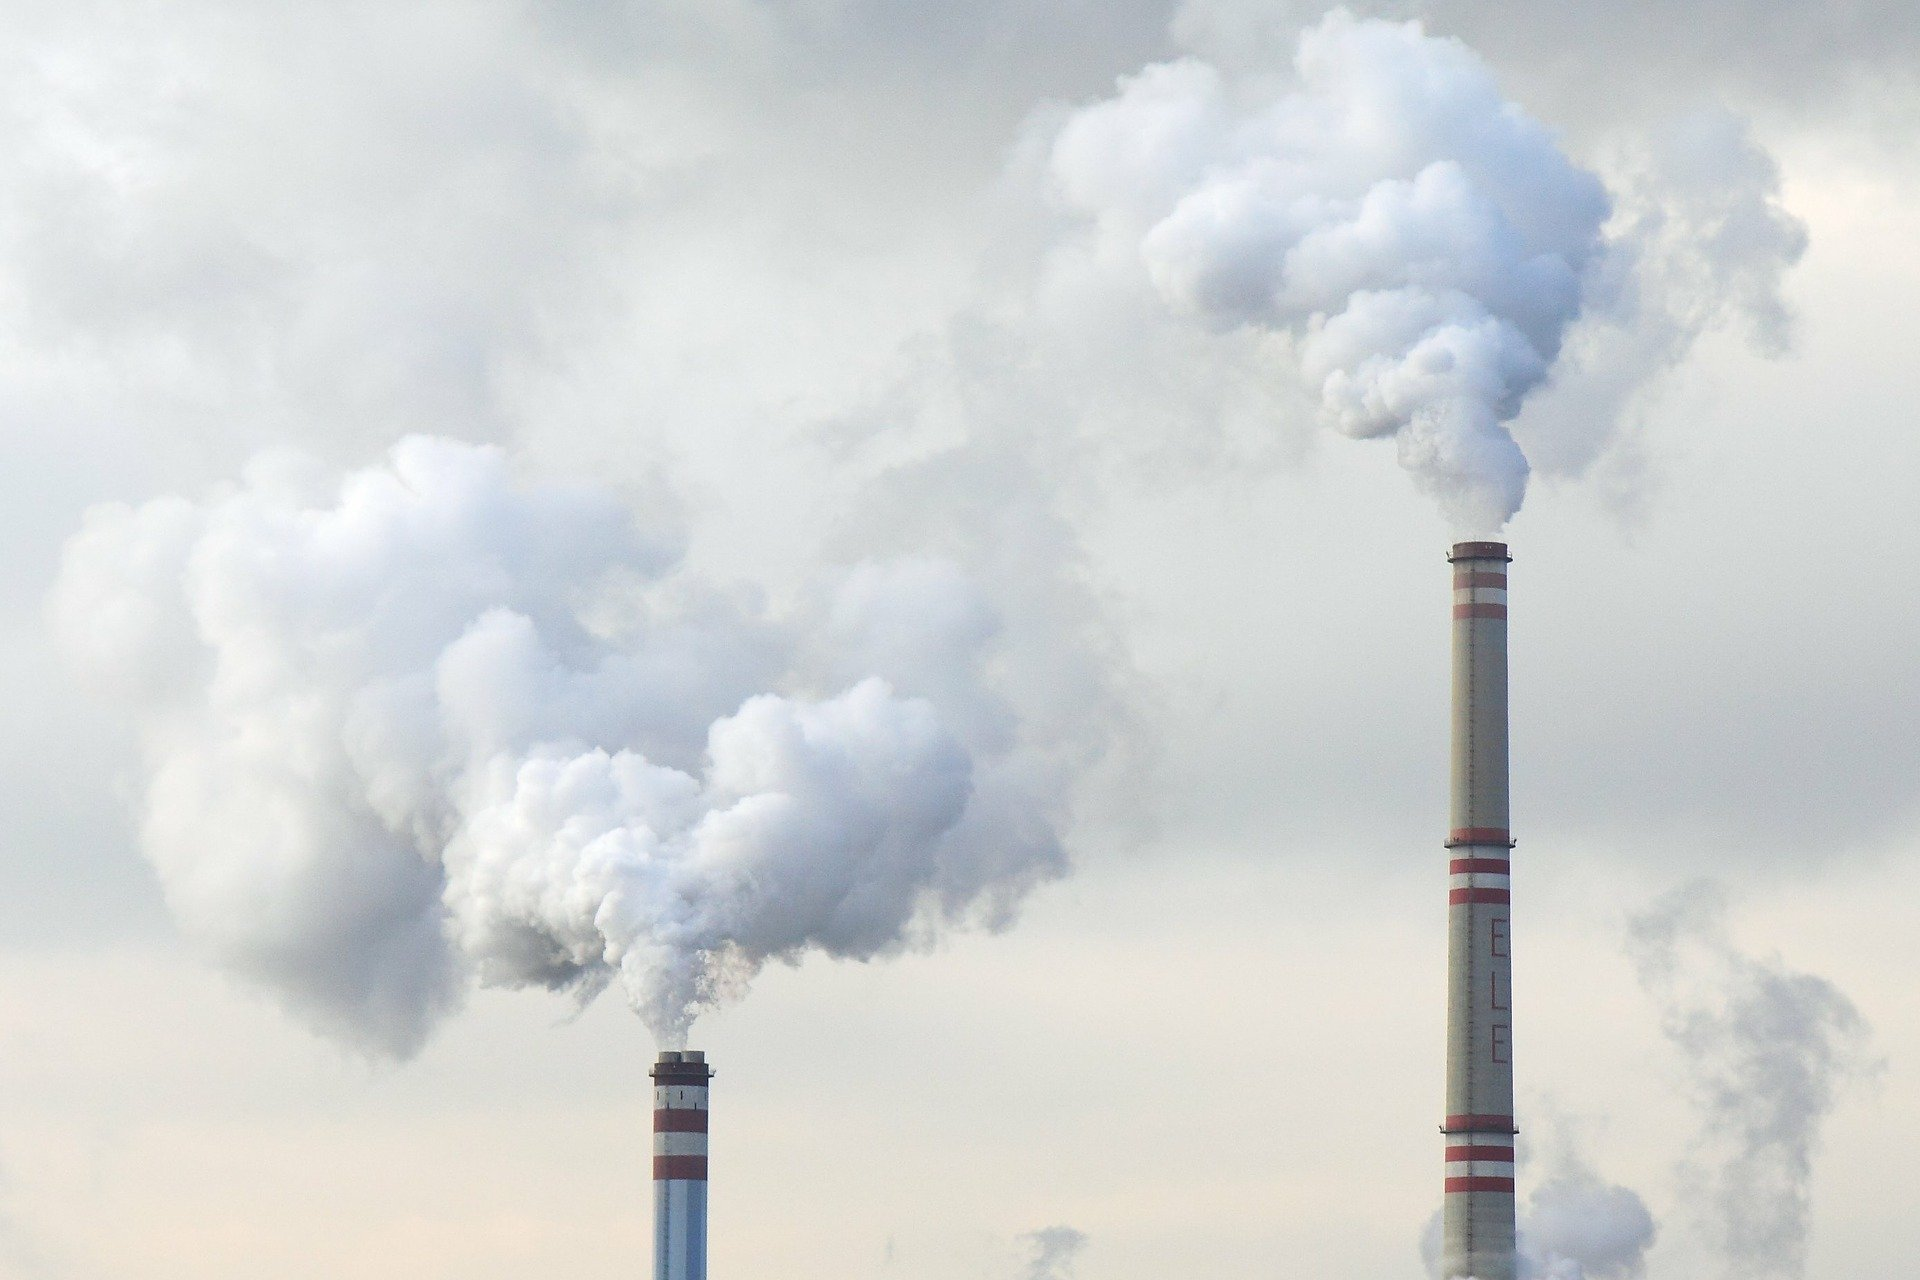 200+ CSOs call on world leaders to end public finance for fossil fuels in 2021